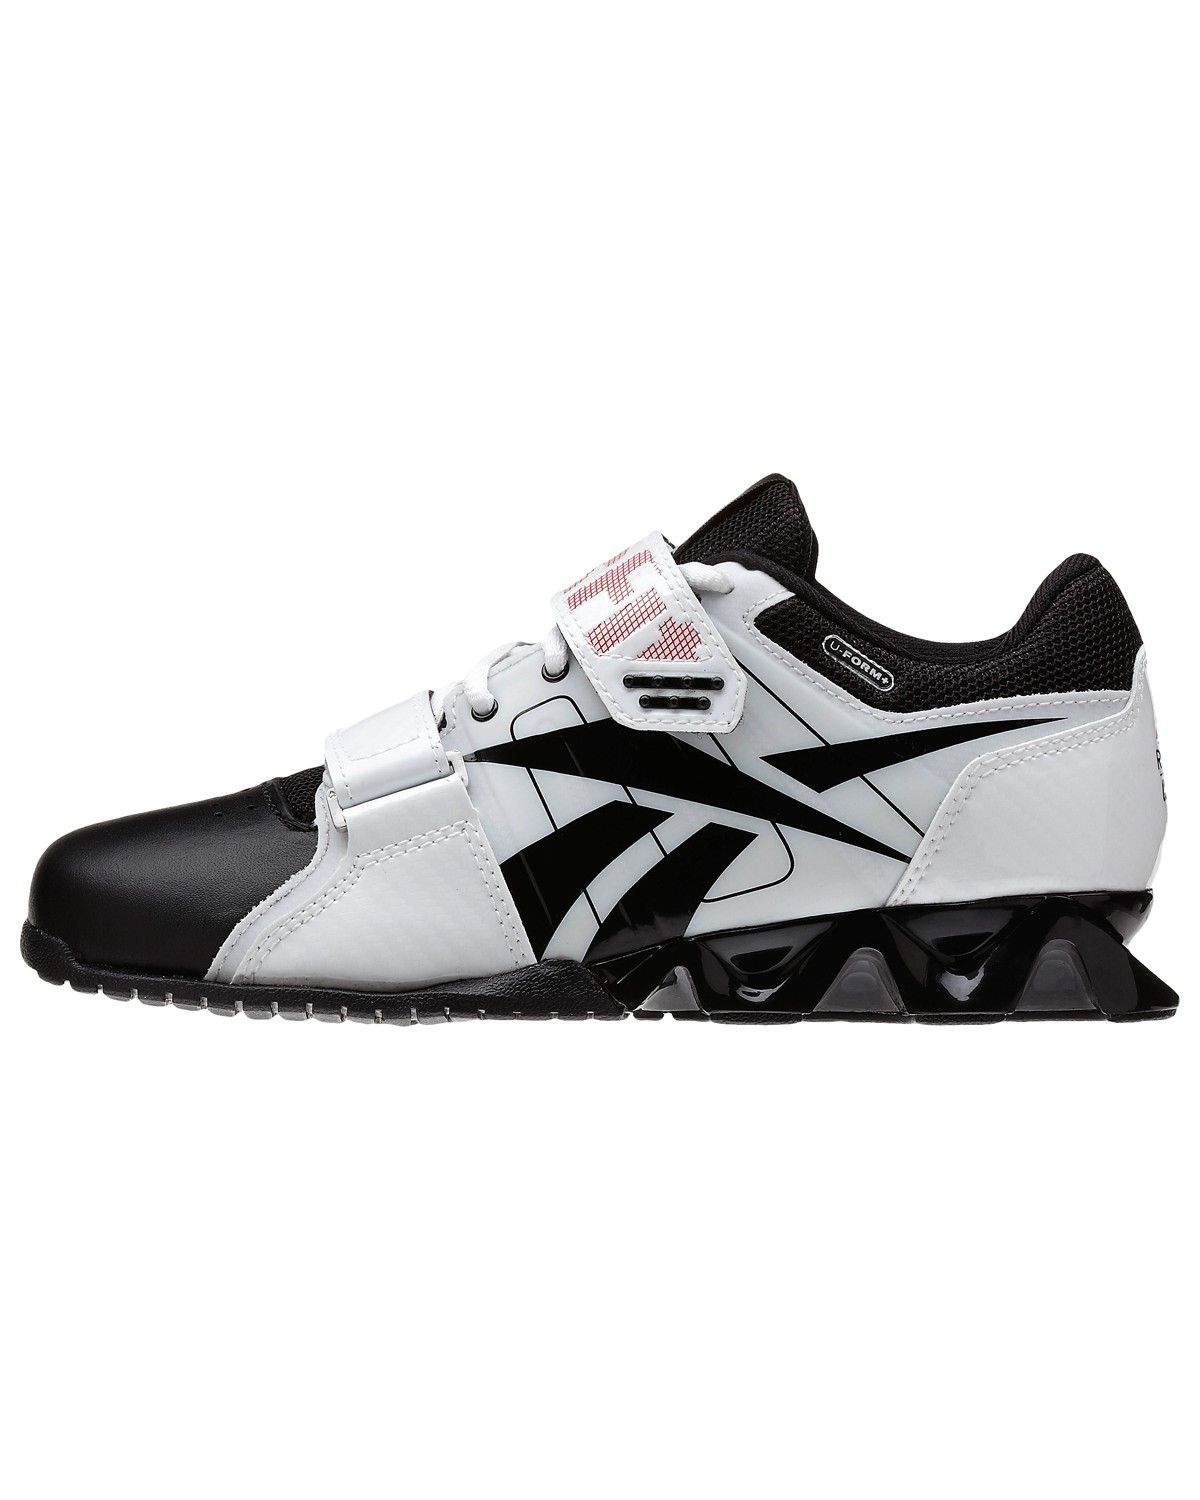 Womens Reebok CrossFit Lifter Plus WHY DONT THEY HAVE THESE ANYMORE ... 332919d9c